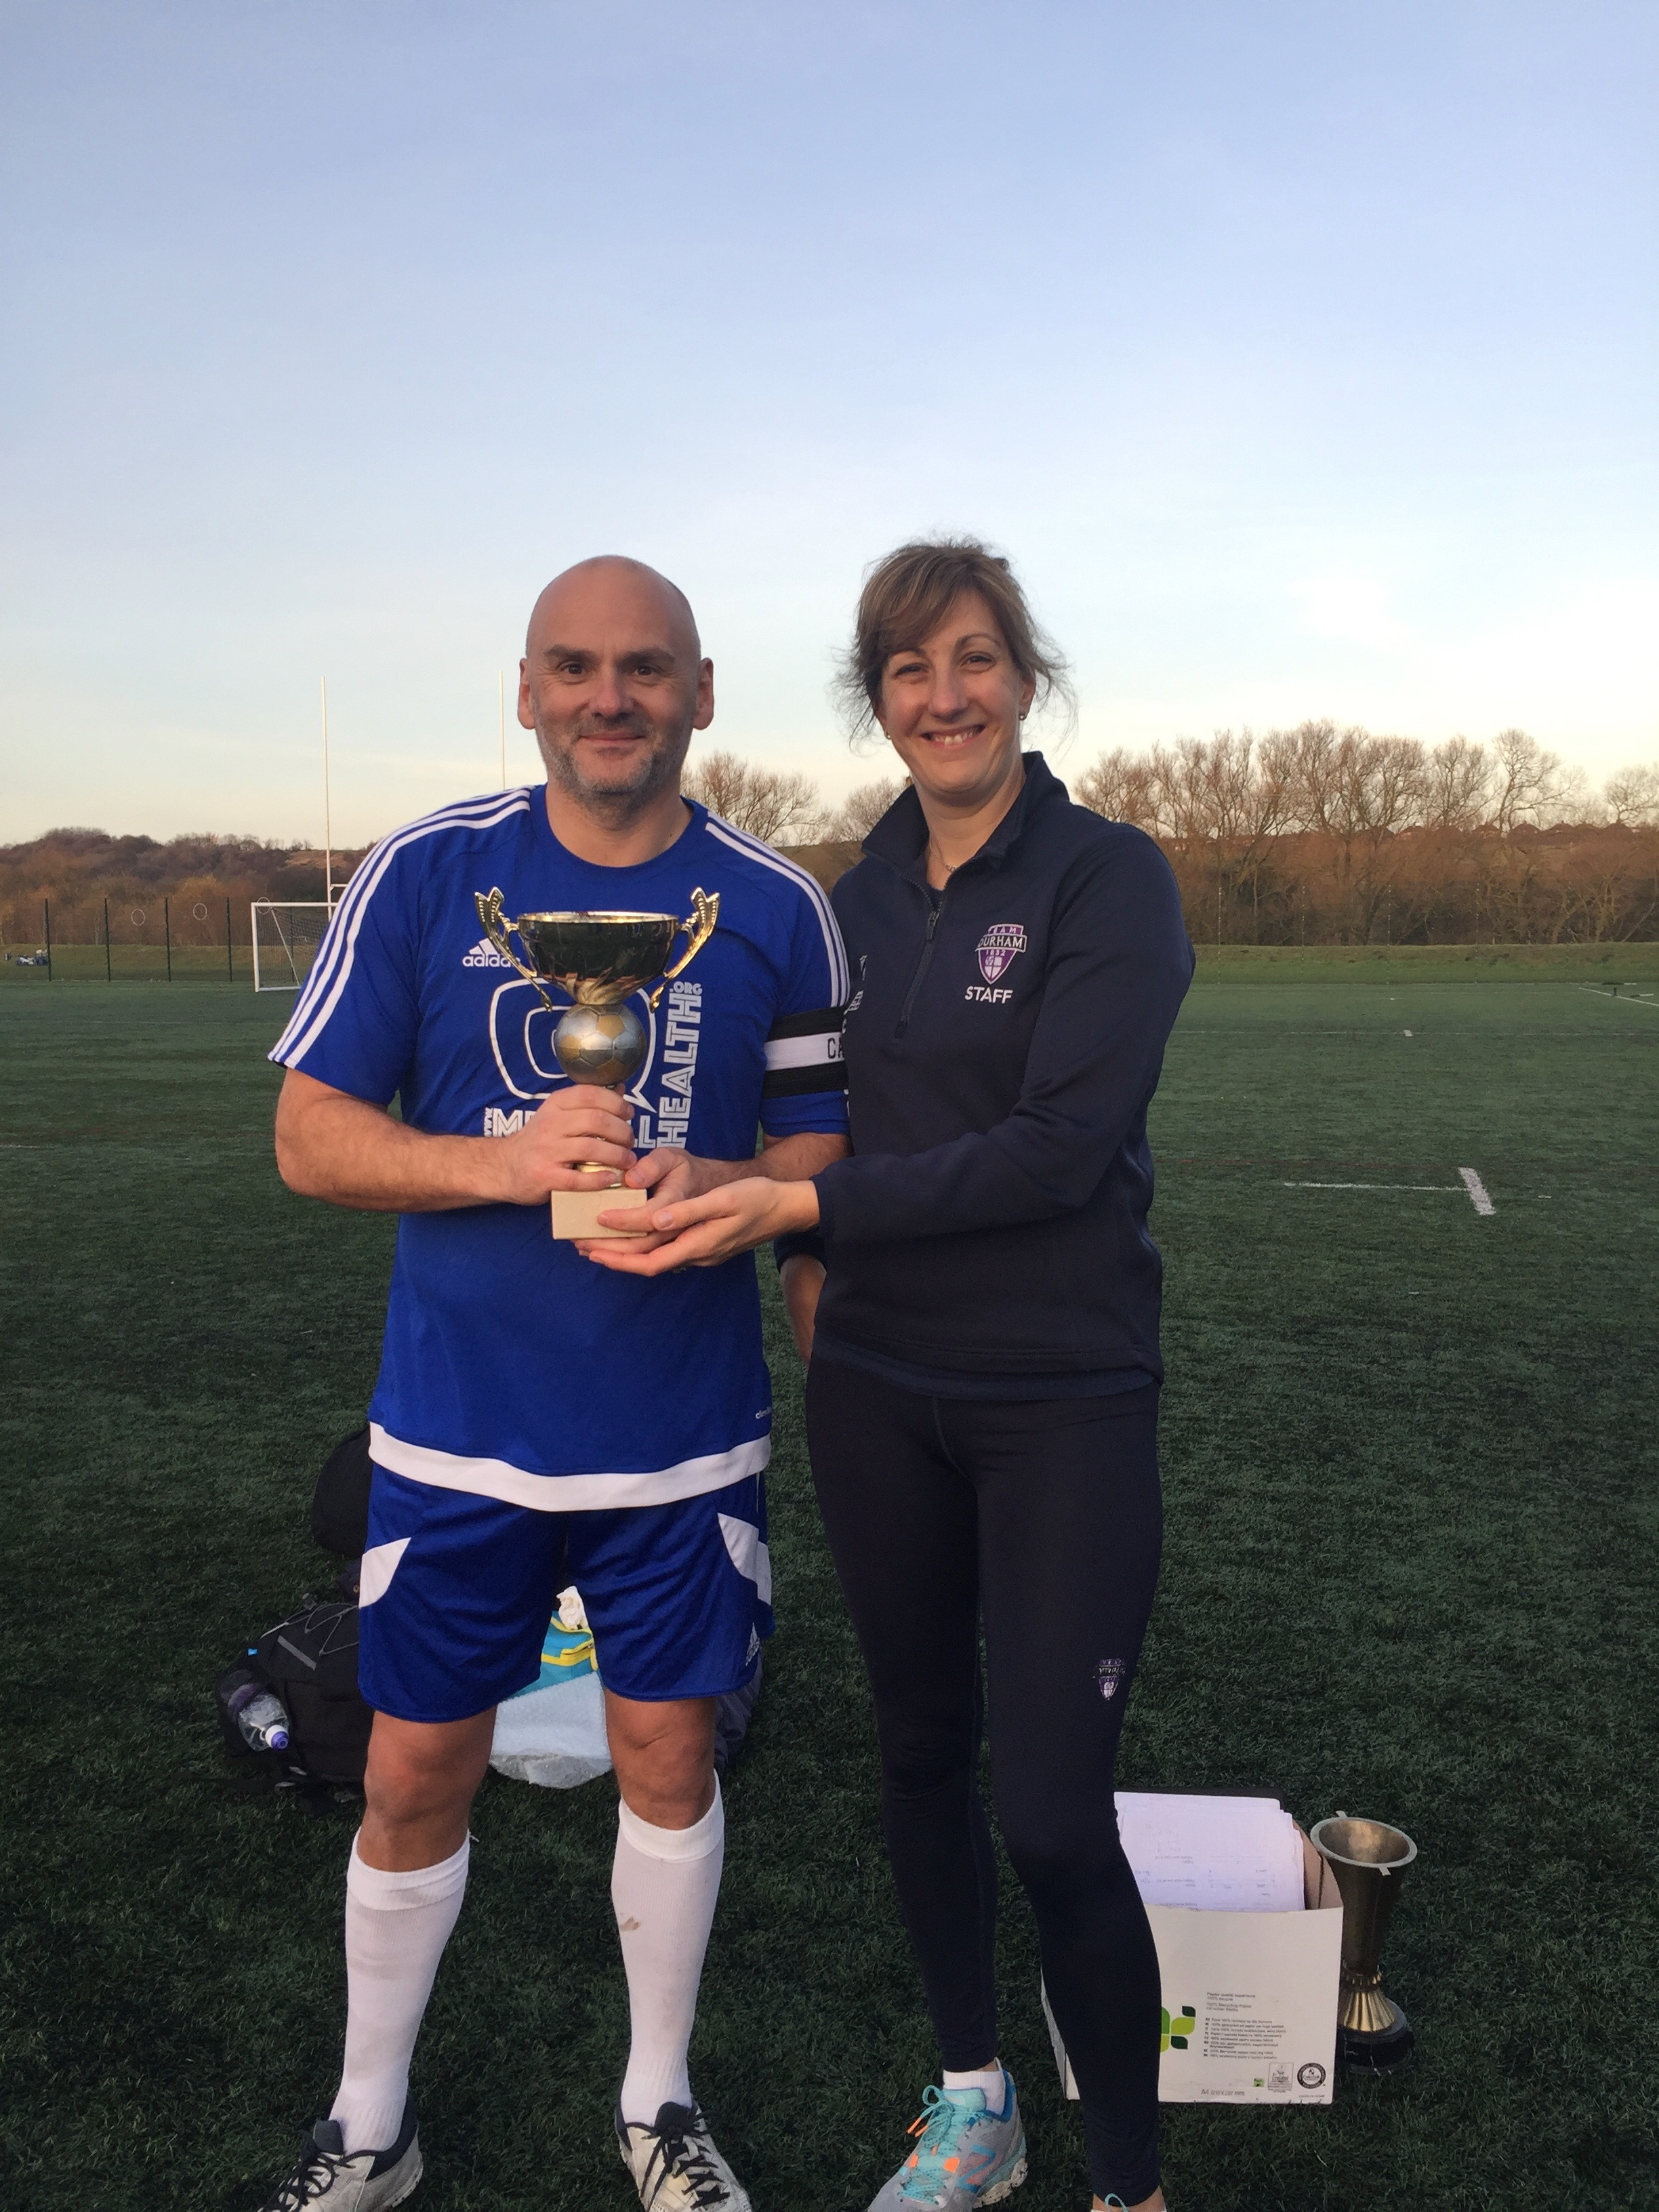 Captain Rich with the prize (the trophy, not the lady).